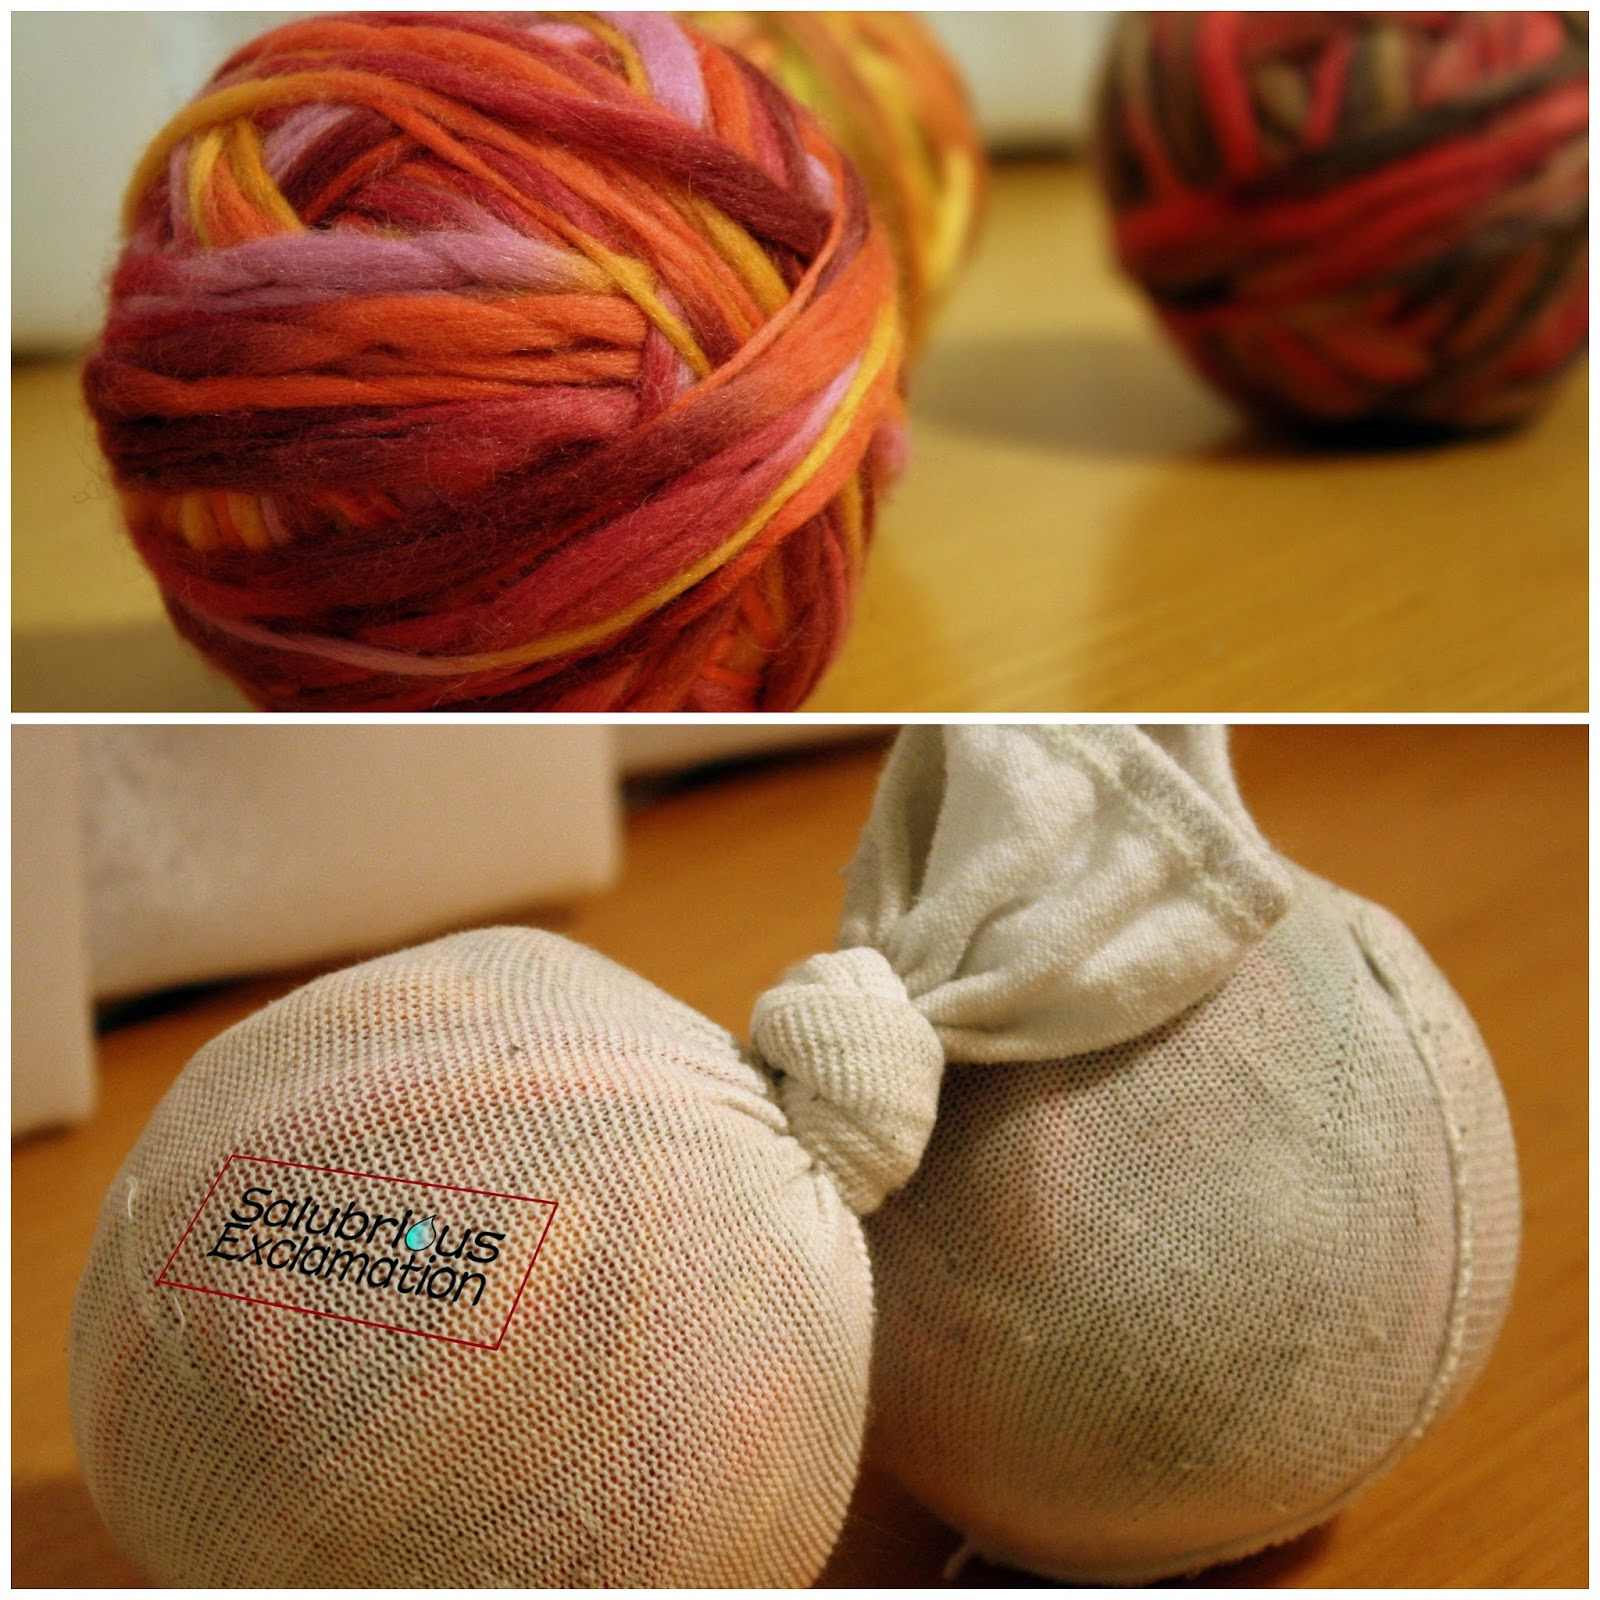 How to Make Wool Dryer Balls for Laundry